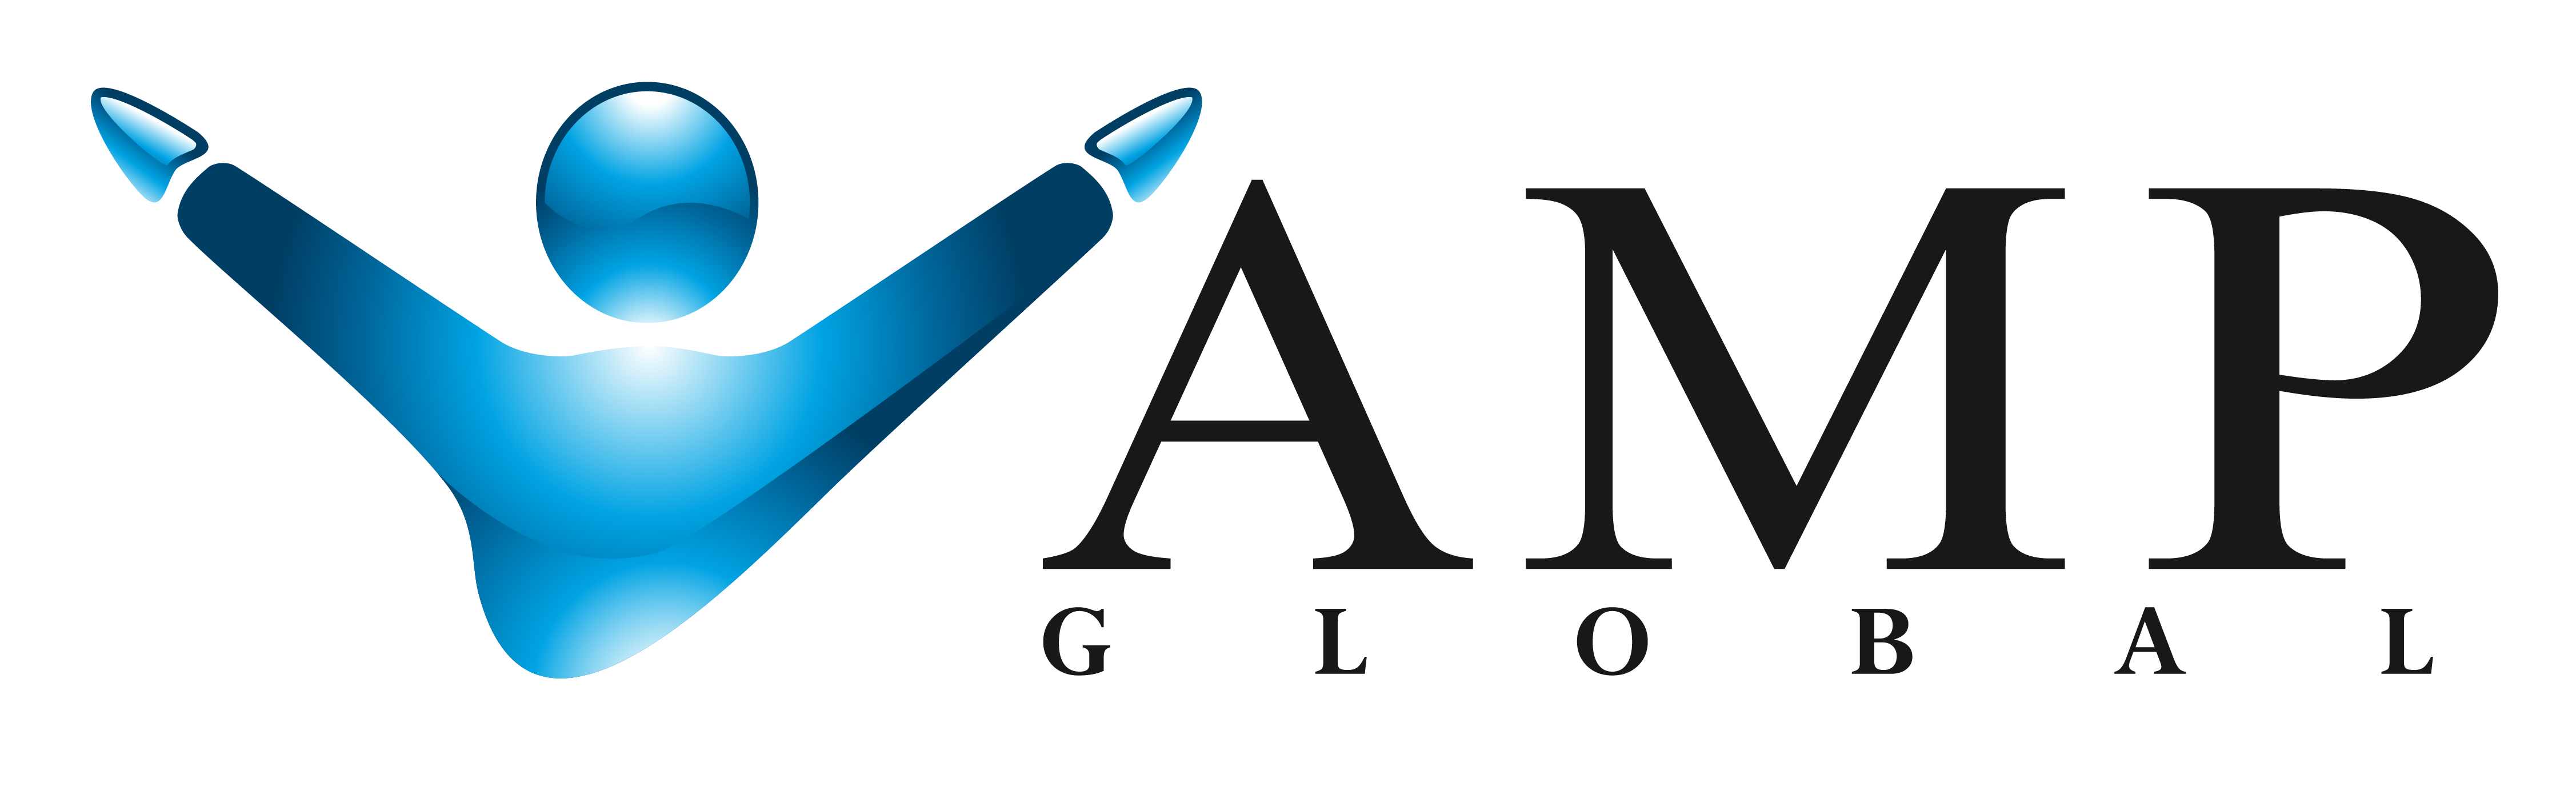 amp-global-logo-black-2